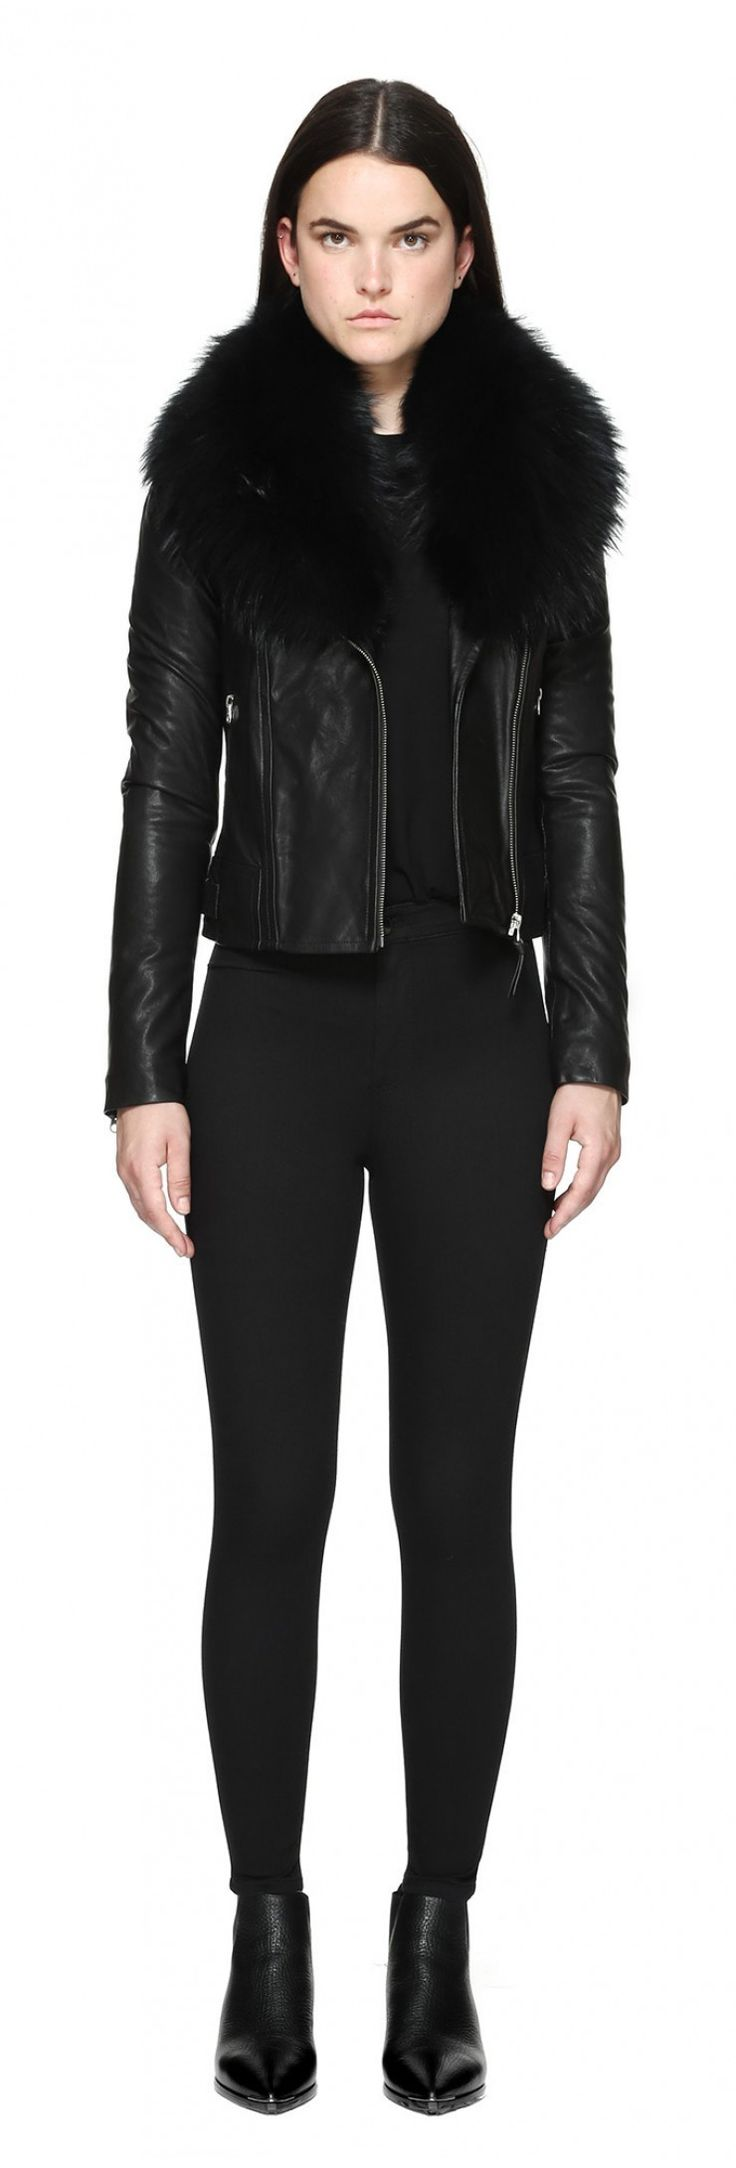 YOANA-SP BIKER LEATHER JACKET WITH FUR COLLAR IN BLACK